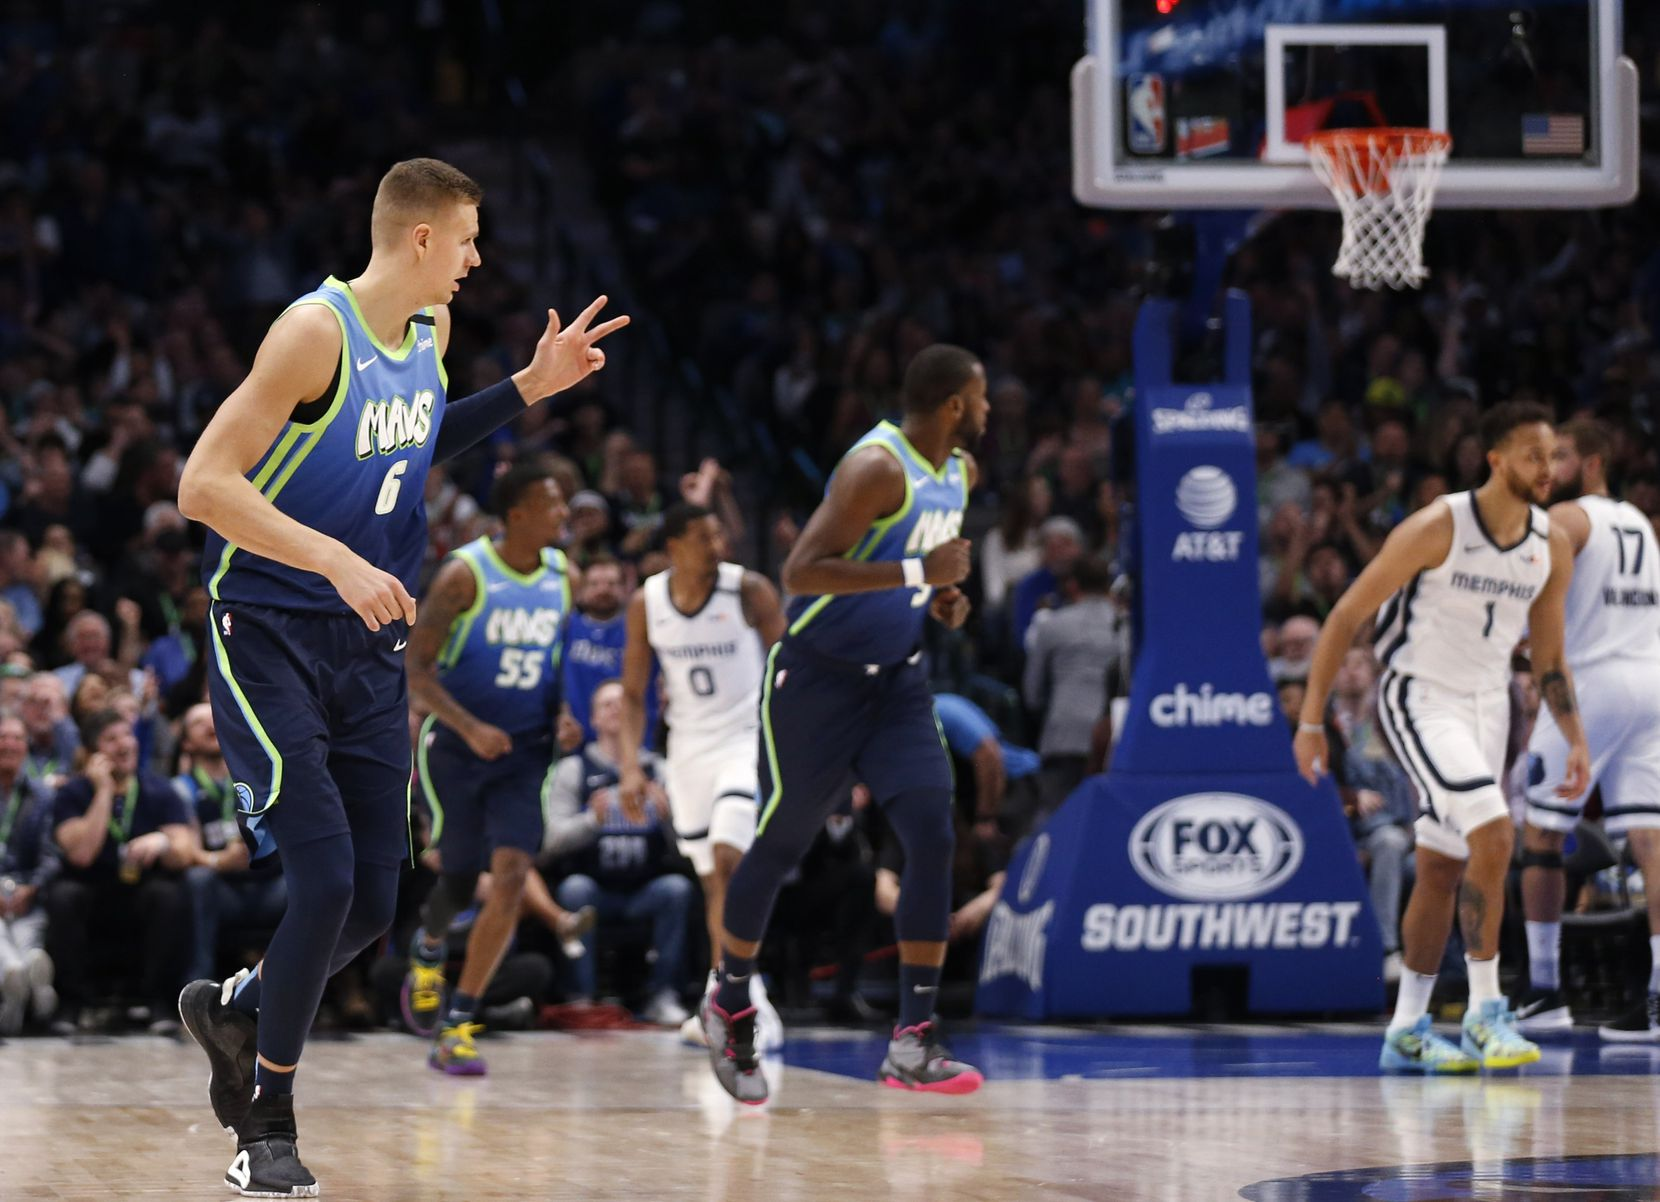 Dallas Mavericks forward Kristaps Porzingis (6) celebrates after a made three pointer in a game against the Memphis Grizzlies during the first half of play at American Airlines Center in Dallas on Friday, March 6, 2020.